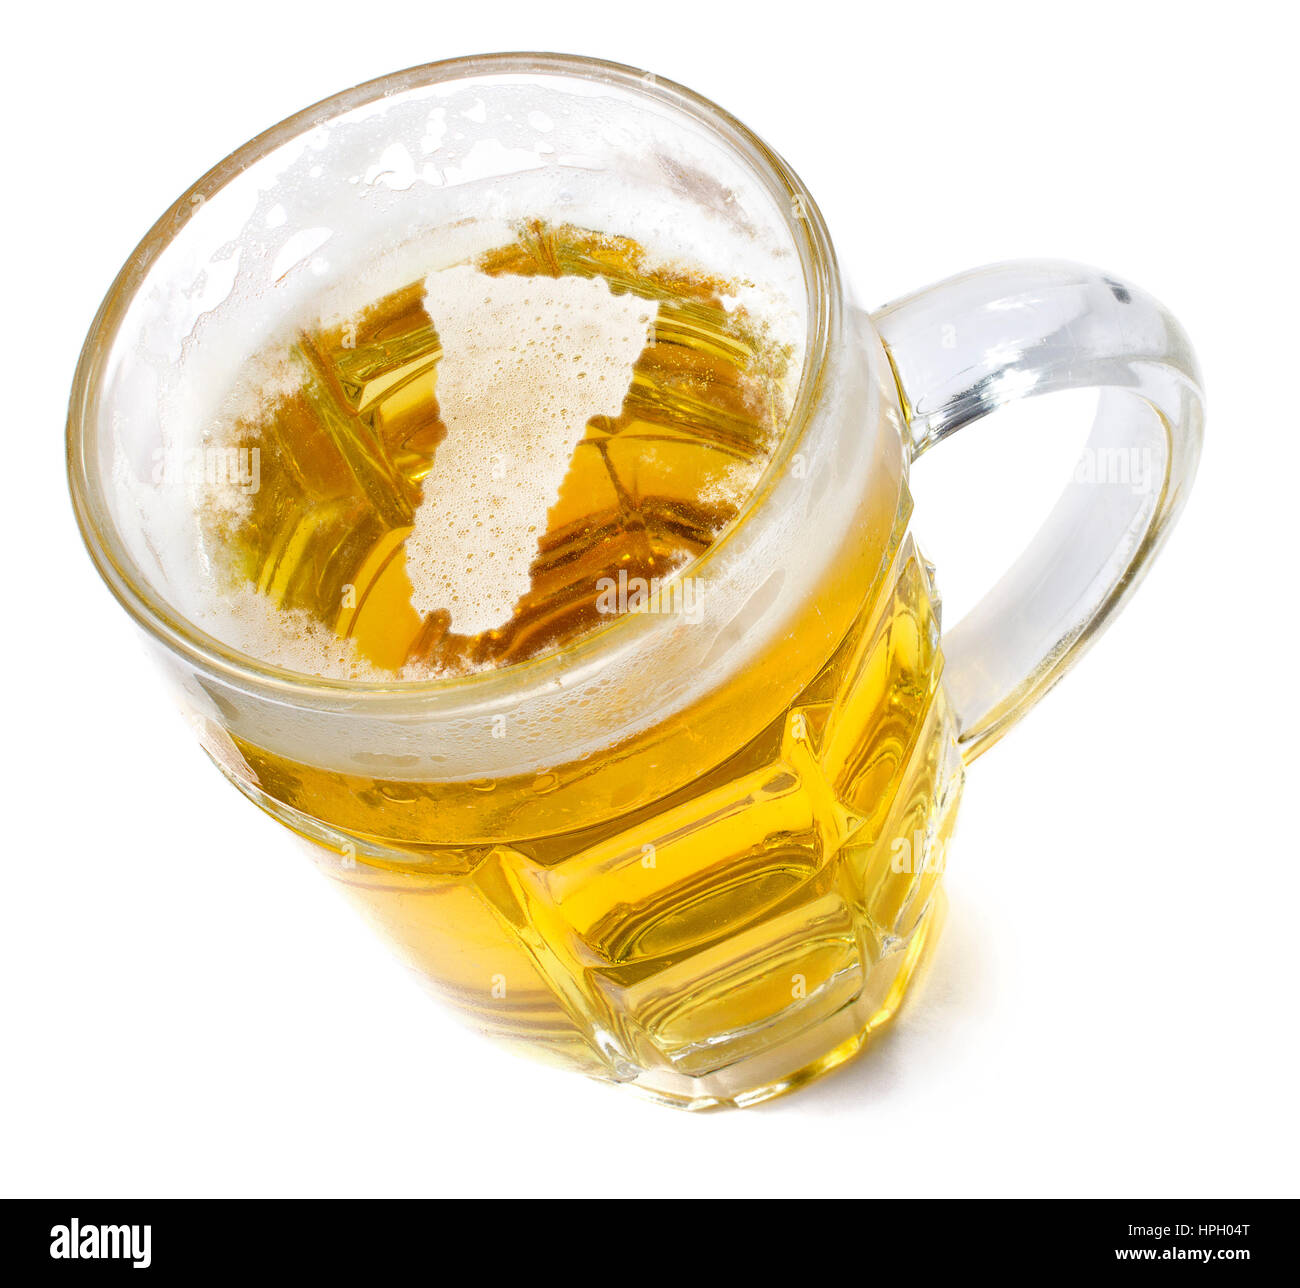 Namibia Beer Stock Photos & Namibia Beer Stock Images